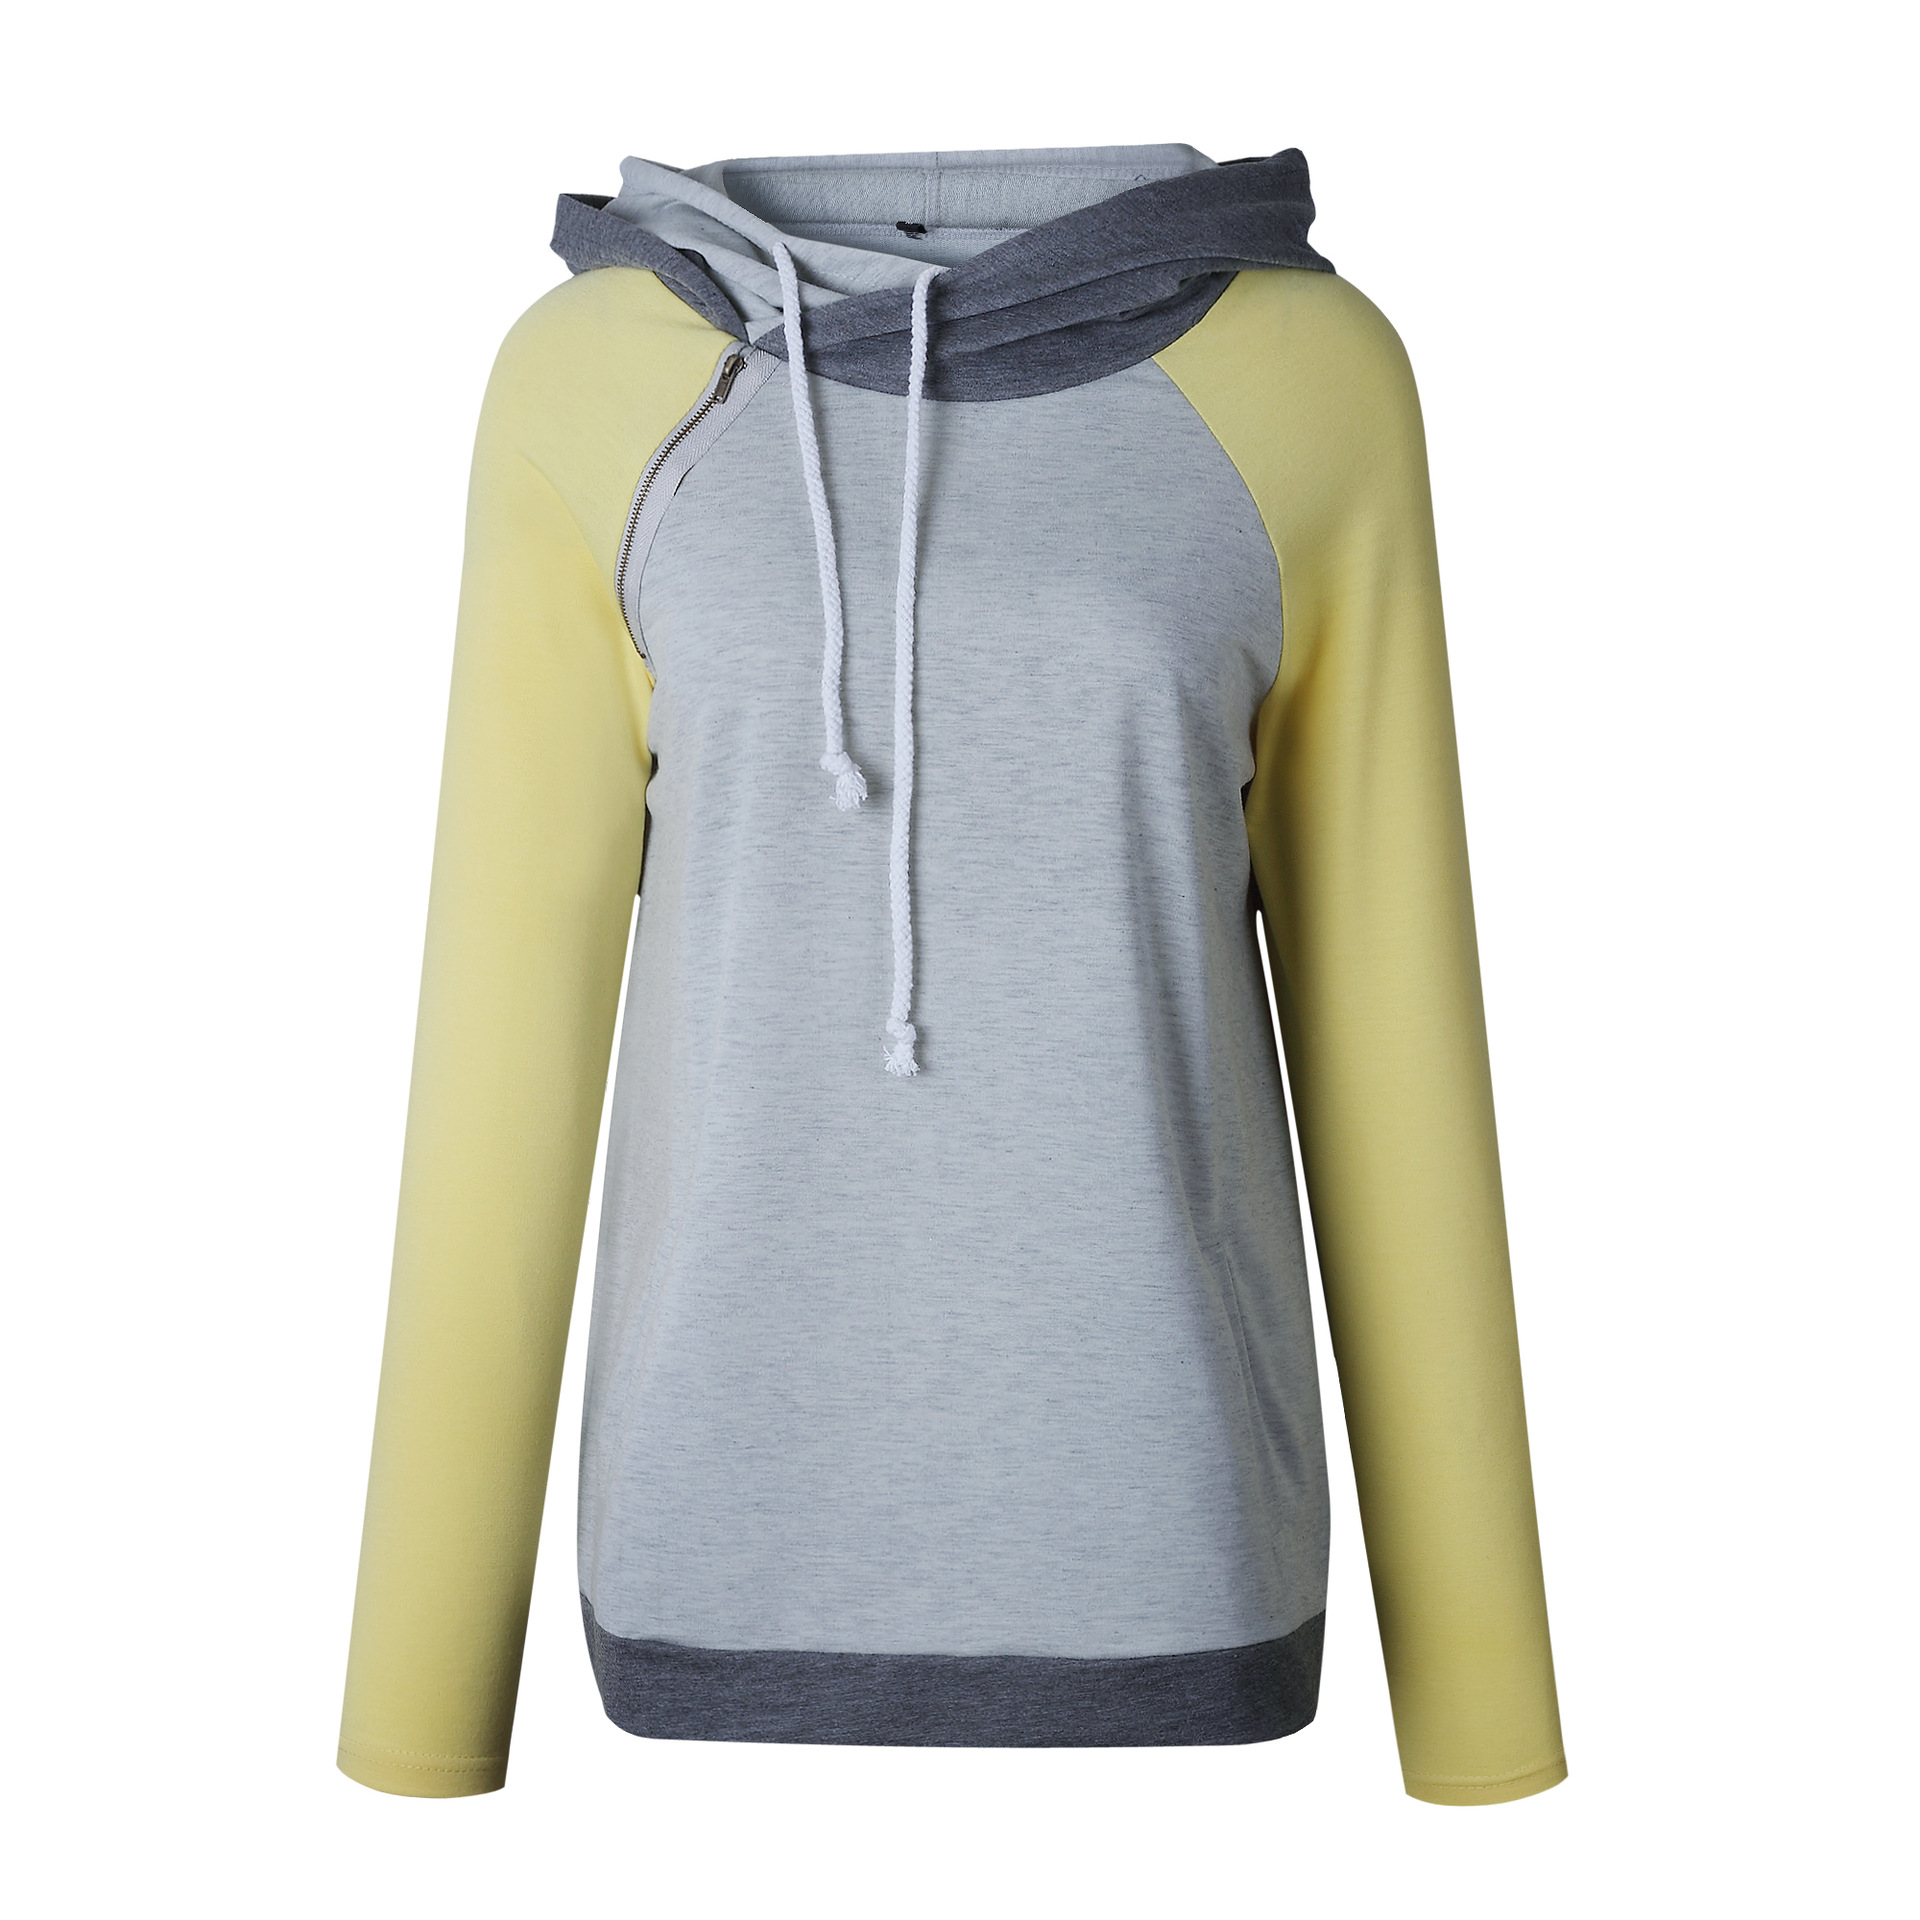 Women's Patchwork Striped Pullover Long Sleeve Hoodie, Tops With Pockets, Hooded Sweatshirt 50